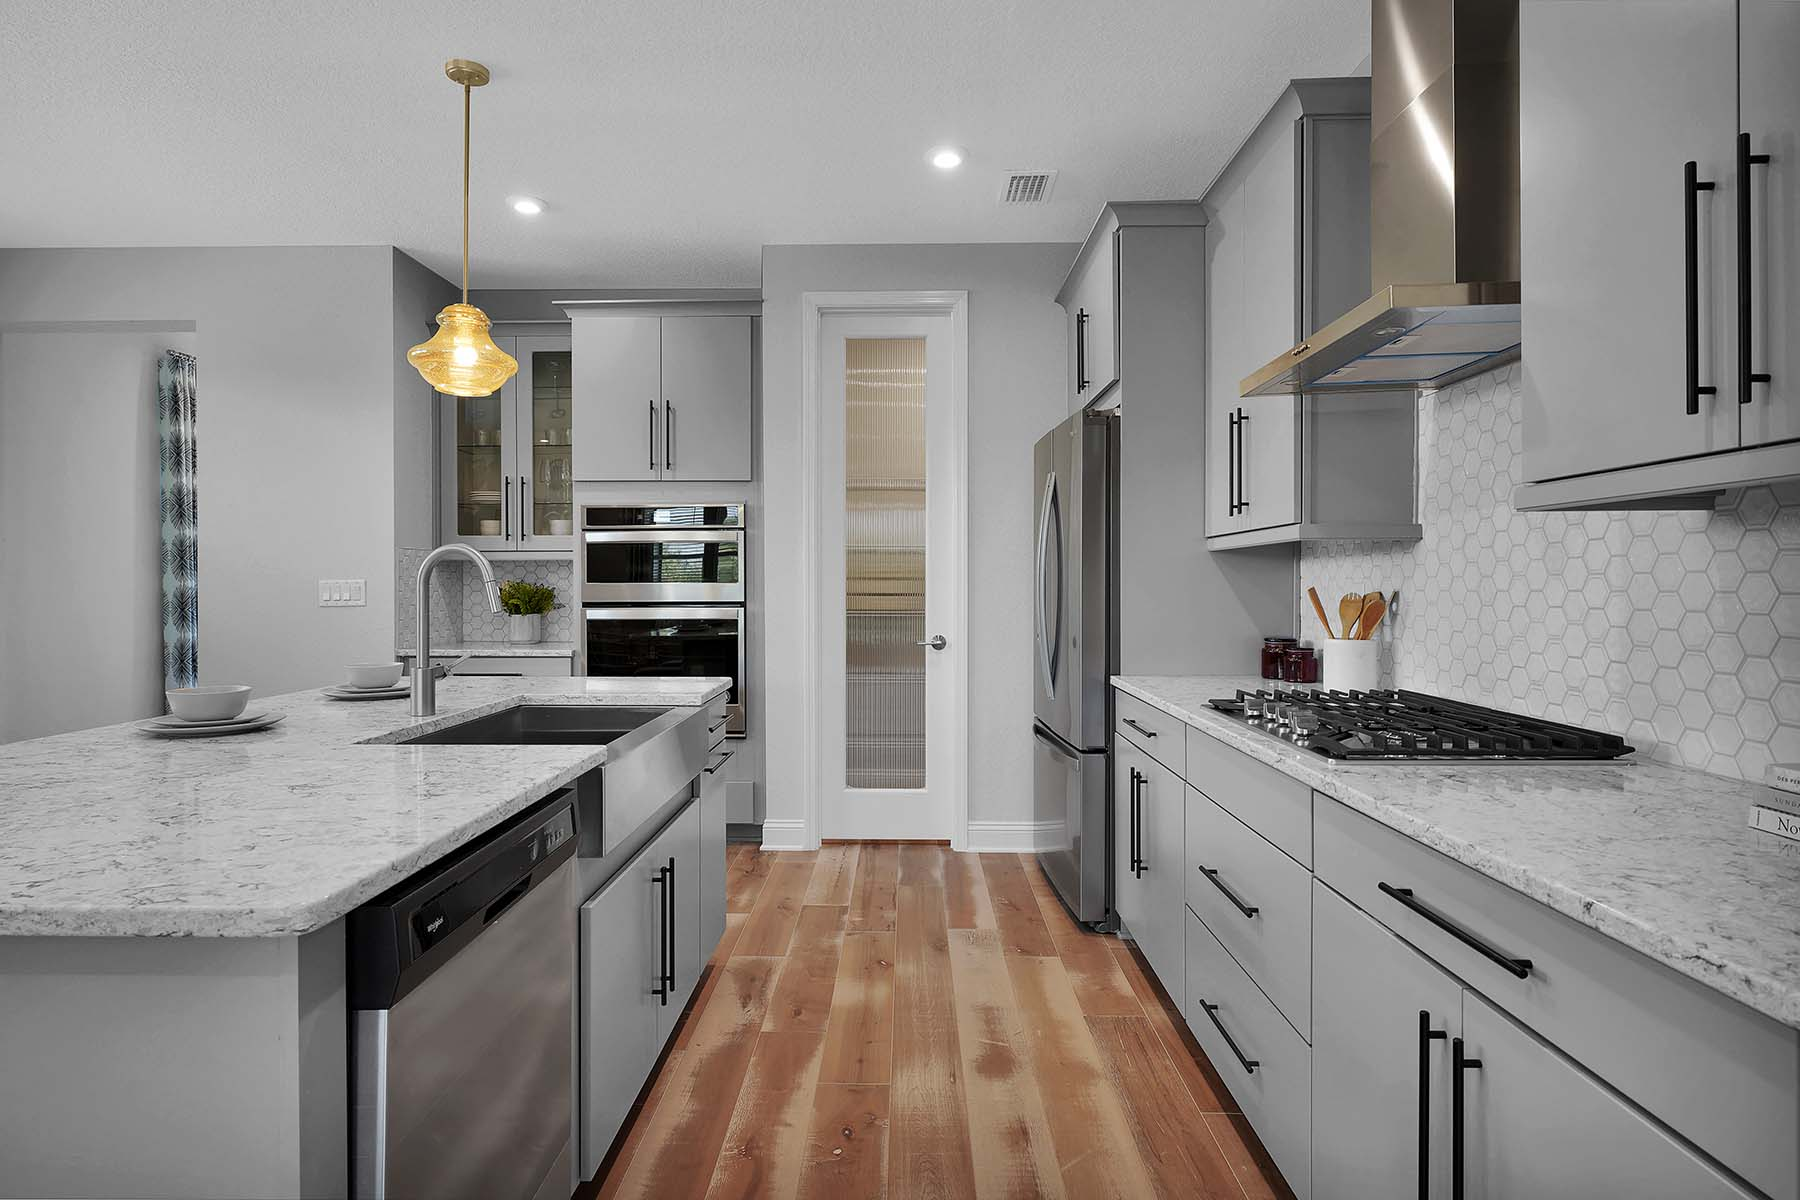 Waverly Plan Kitchen at Pablo Cove in Jacksonville Florida by Mattamy Homes